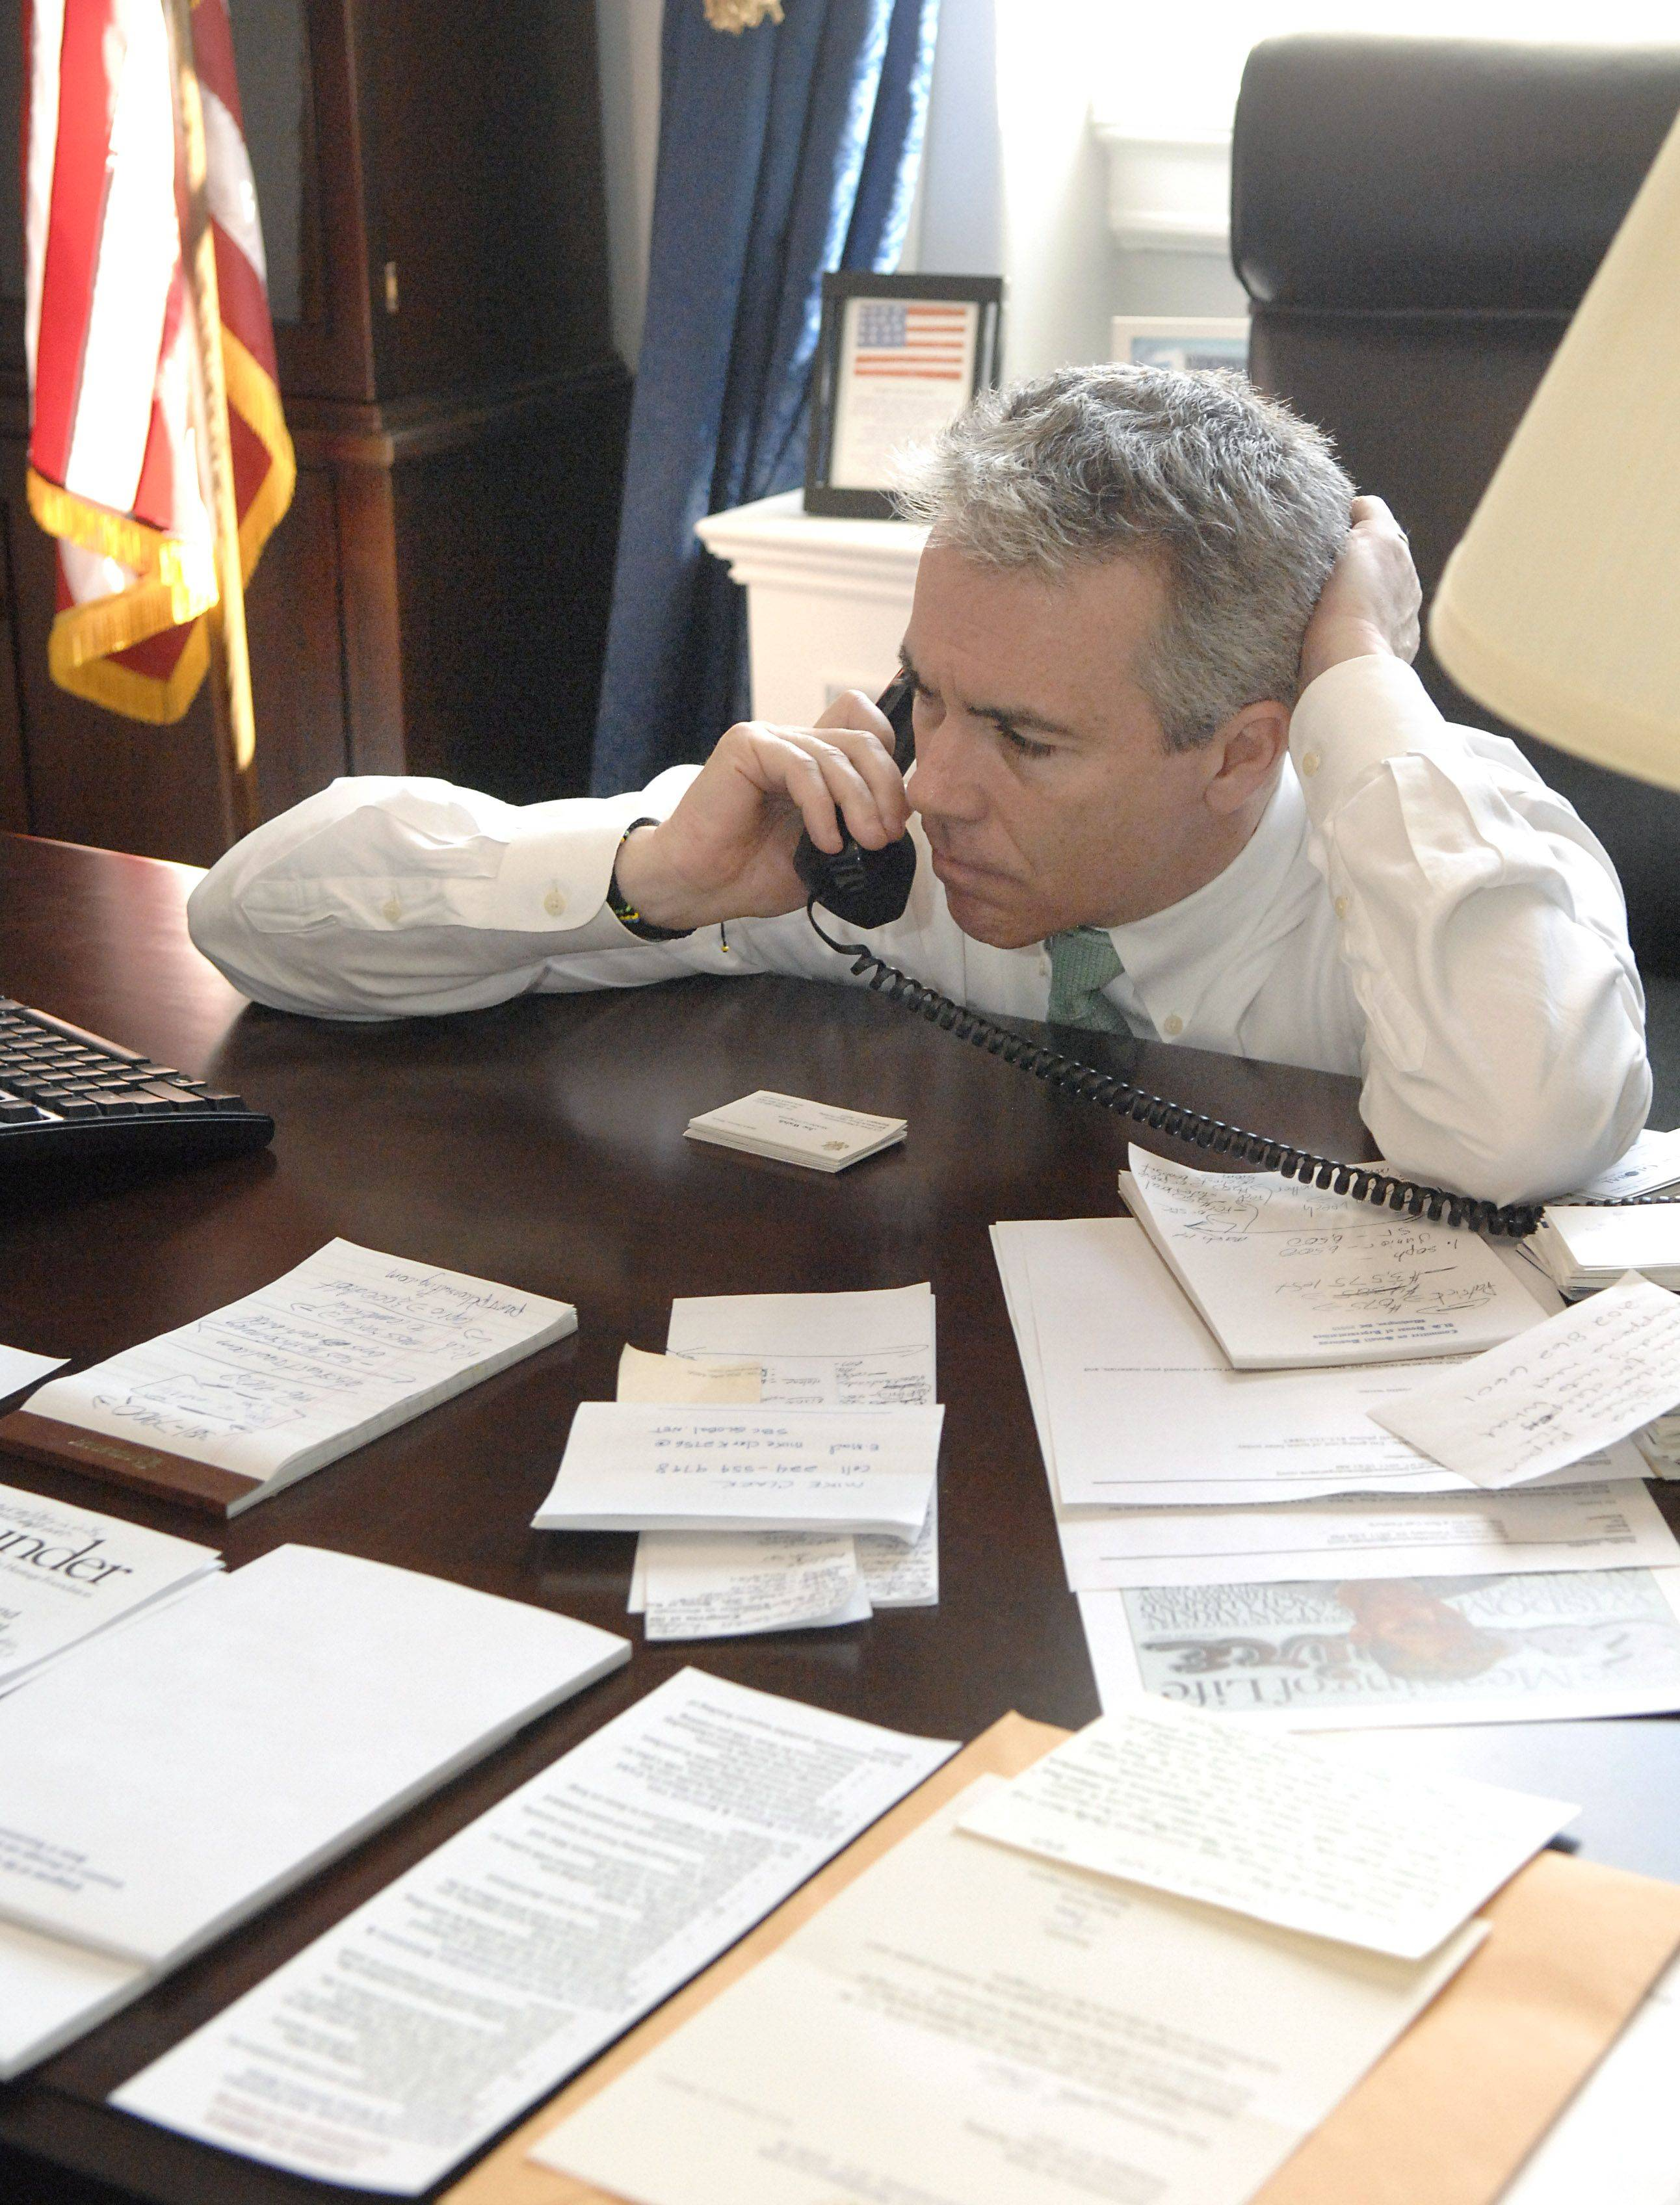 Congressman Joe Walsh takes a phone call in-between meetings in office in the Cannon House Office Building in Washington, D.C.